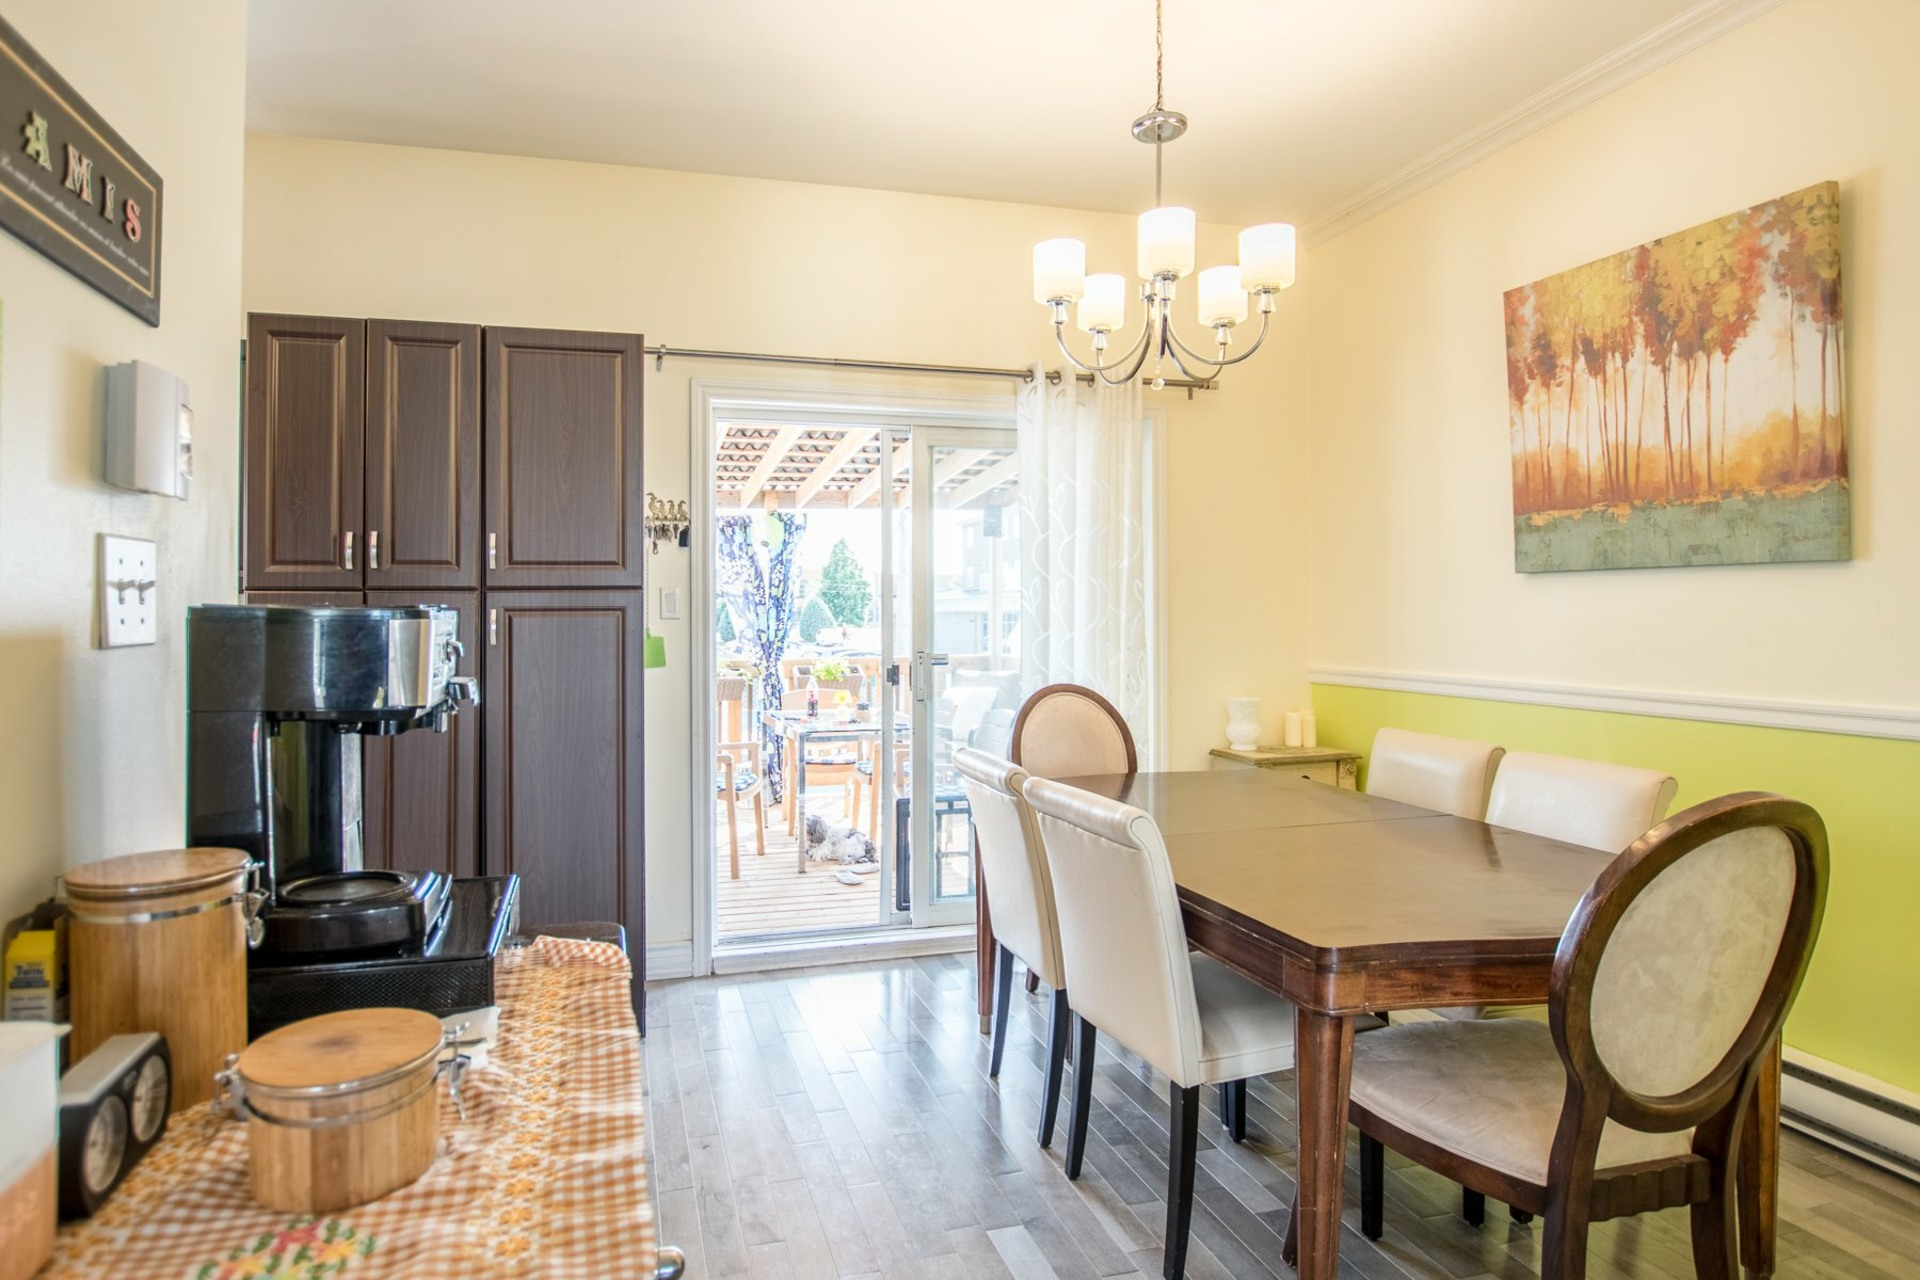 image 9 - House For sale Sainte-Catherine - 8 rooms